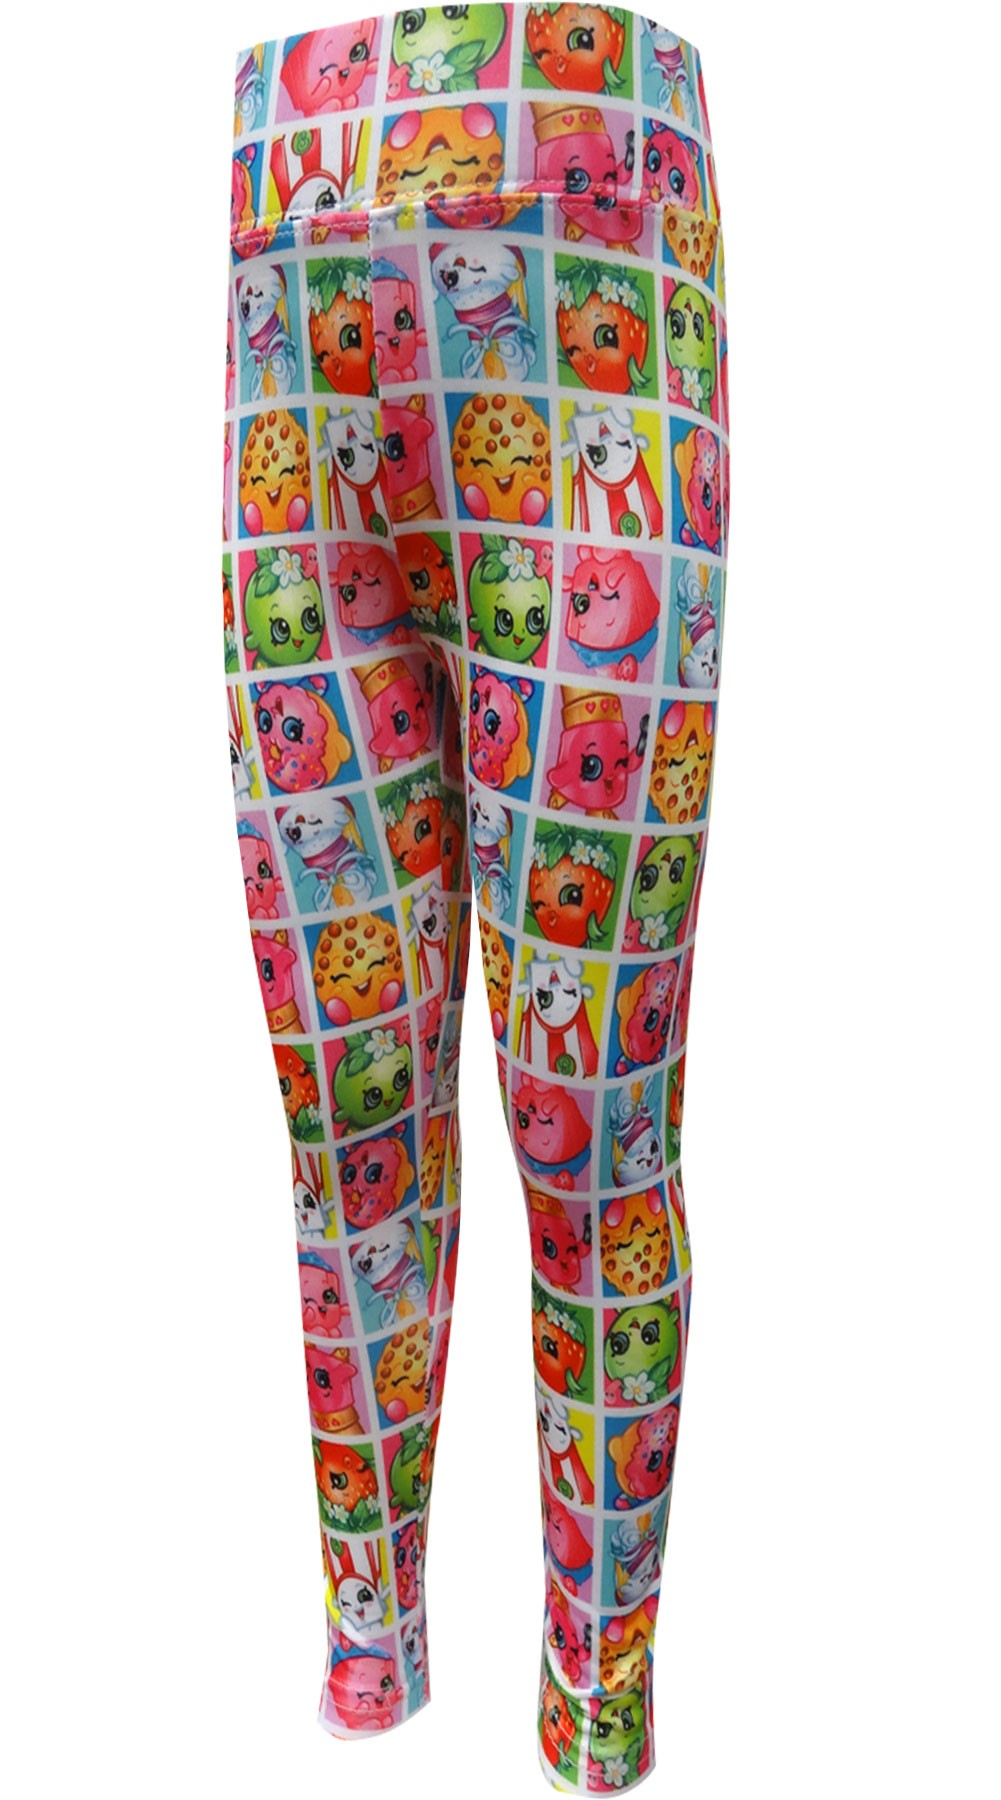 Image of Shopkins Characters Leggings for girls